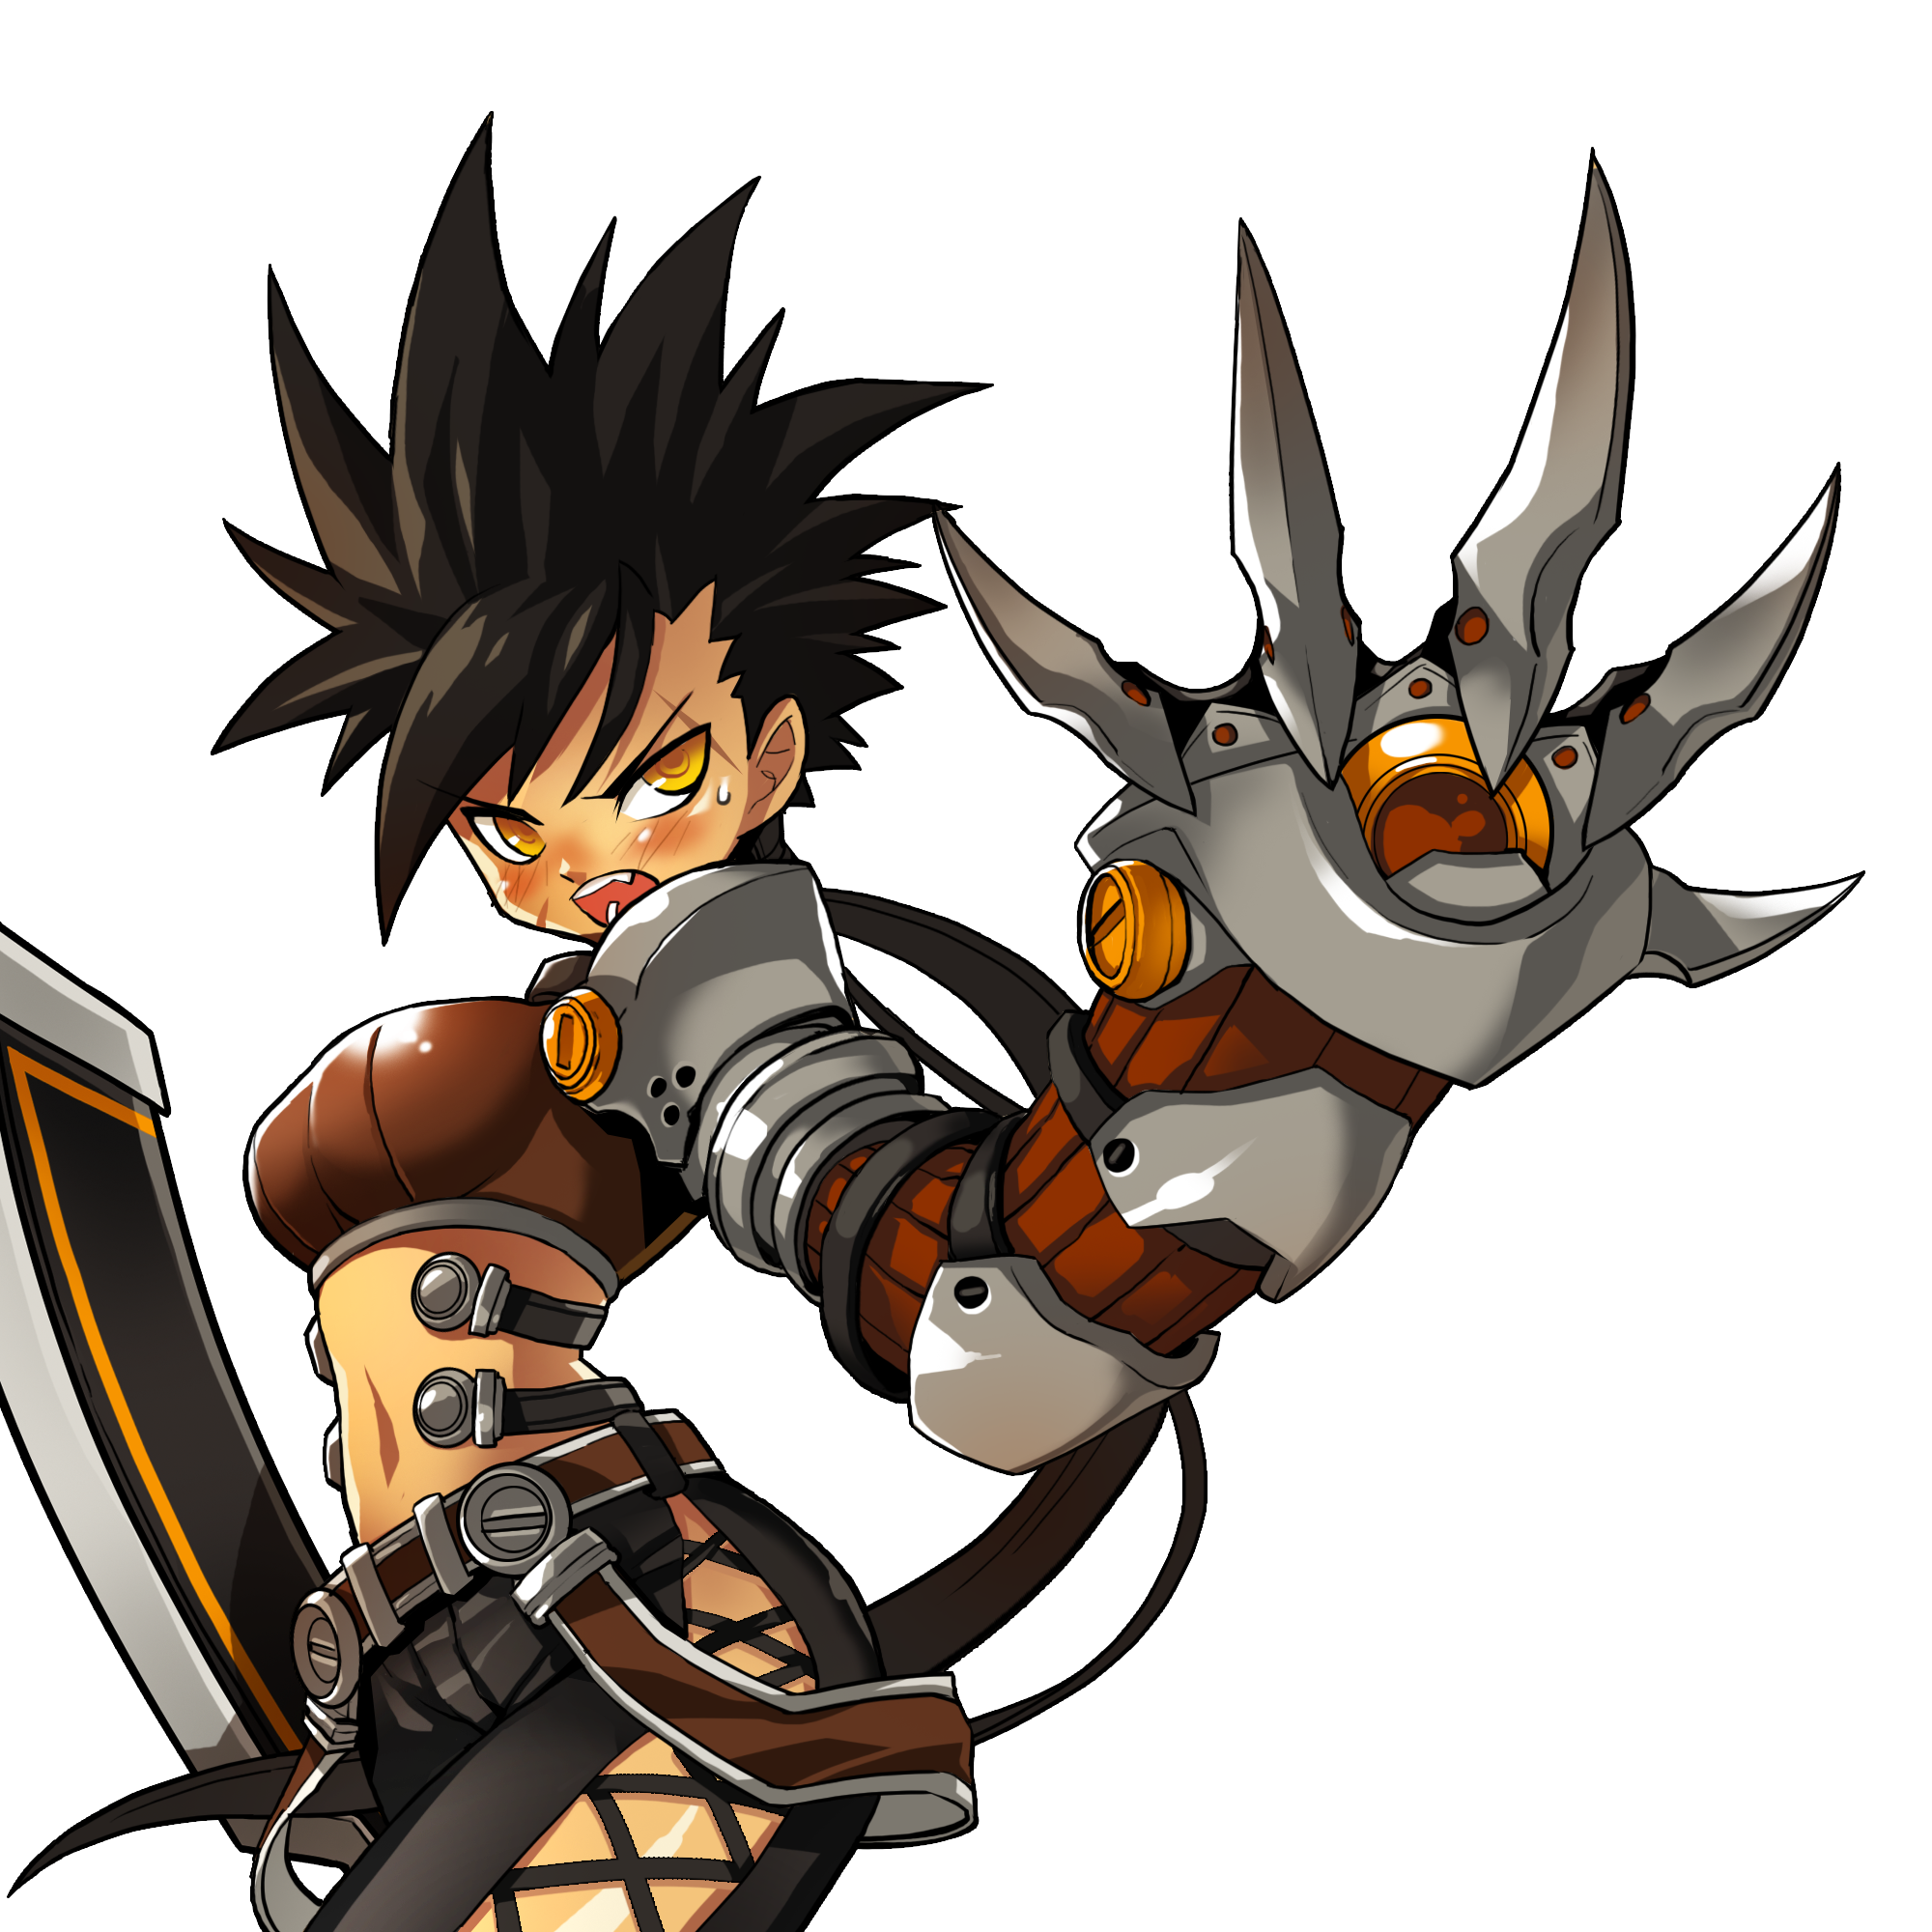 raven elsword india on pinterest raven weapons and